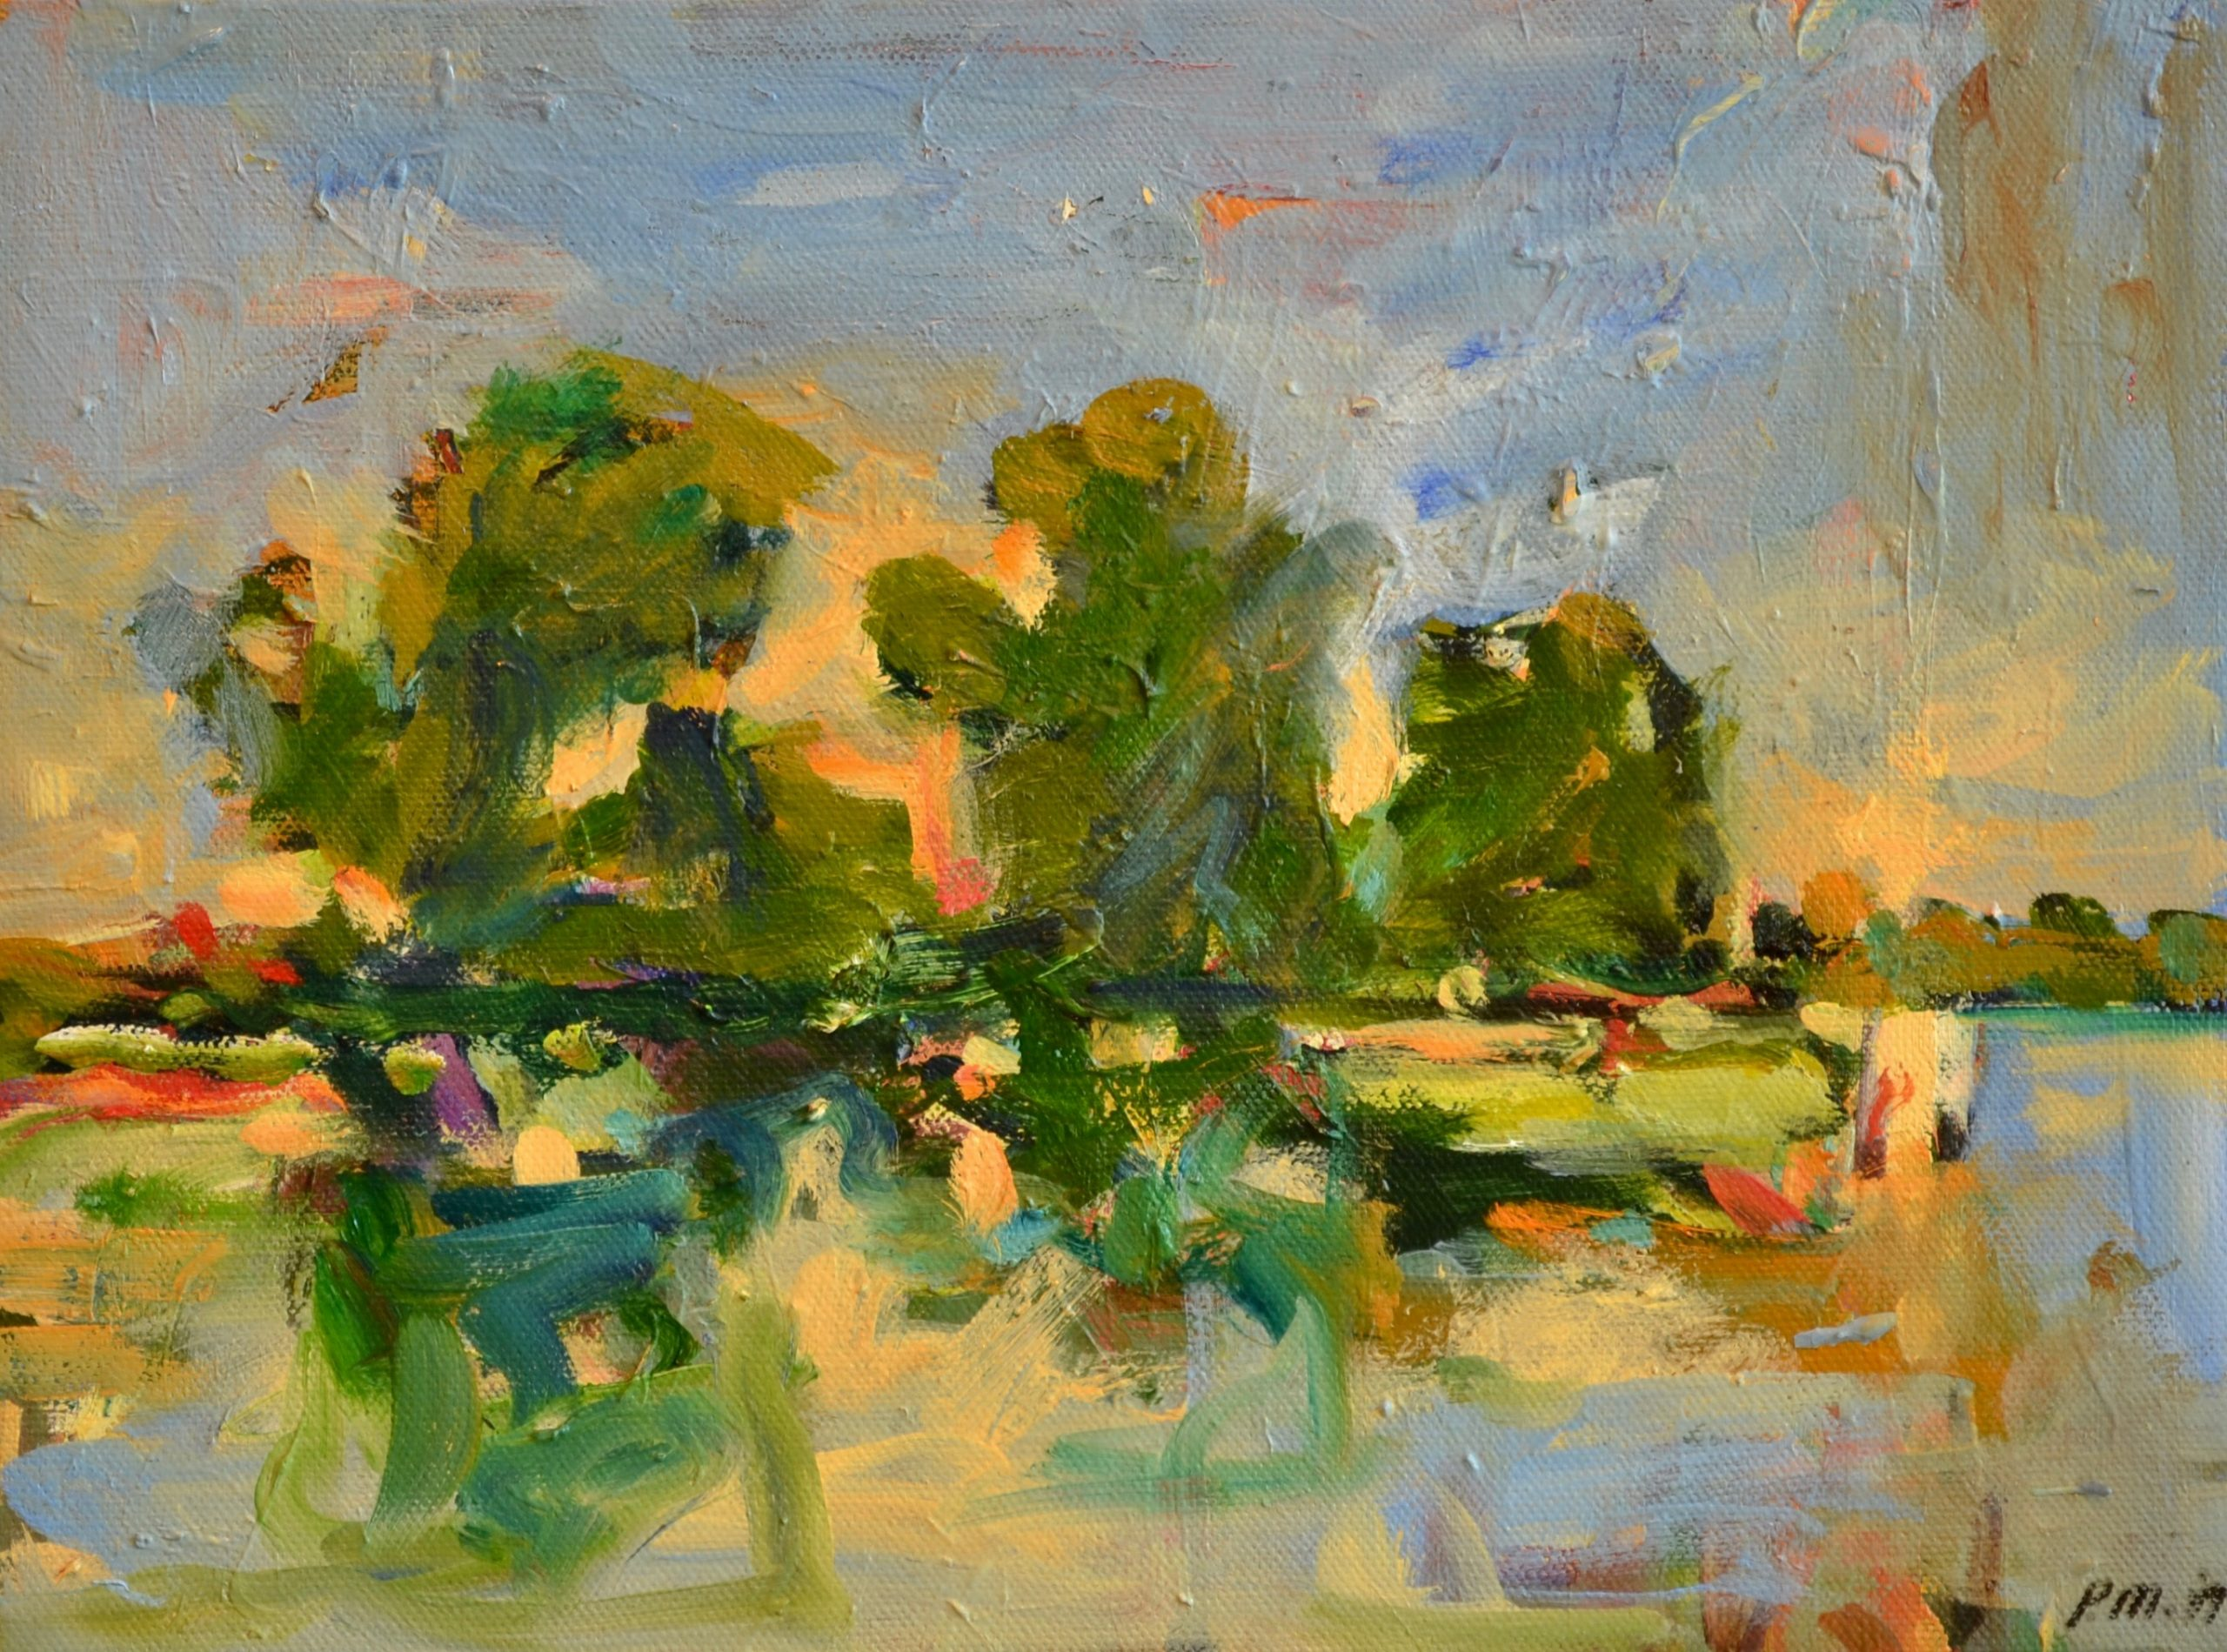 "Pat Mahony - Flood Fields 2 - 9"" x 12"" - Oil on Canvas"